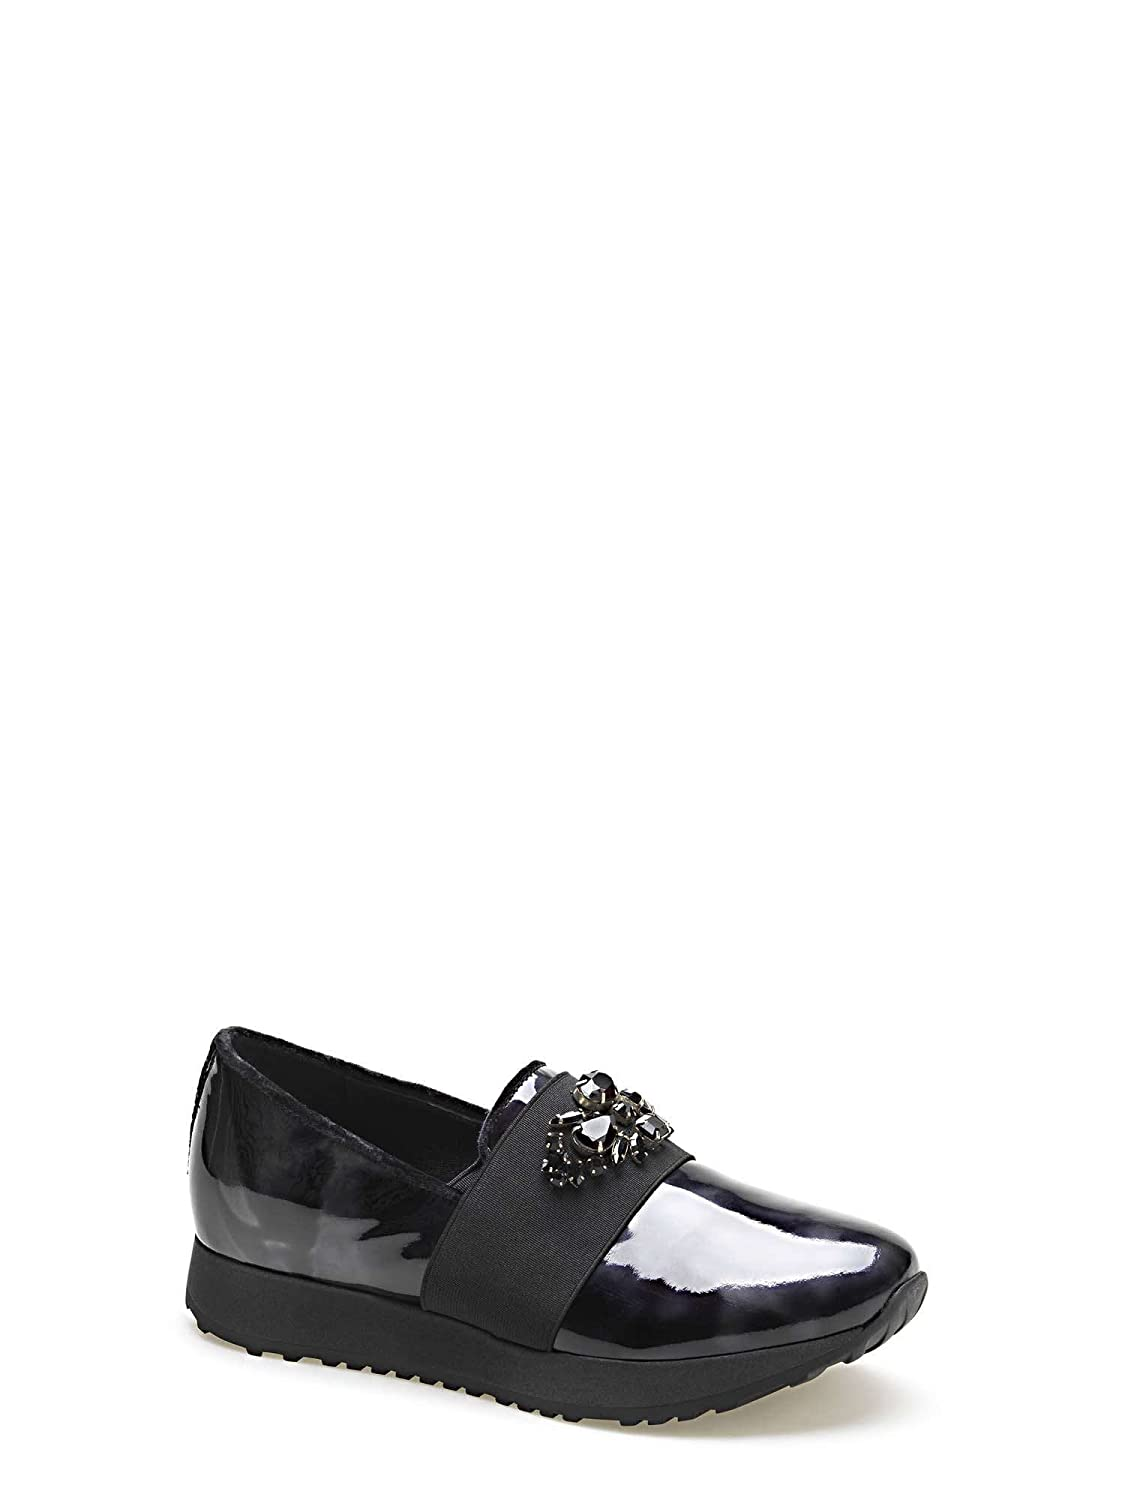 Apepazza MCT16 Slip-on Donna Nero